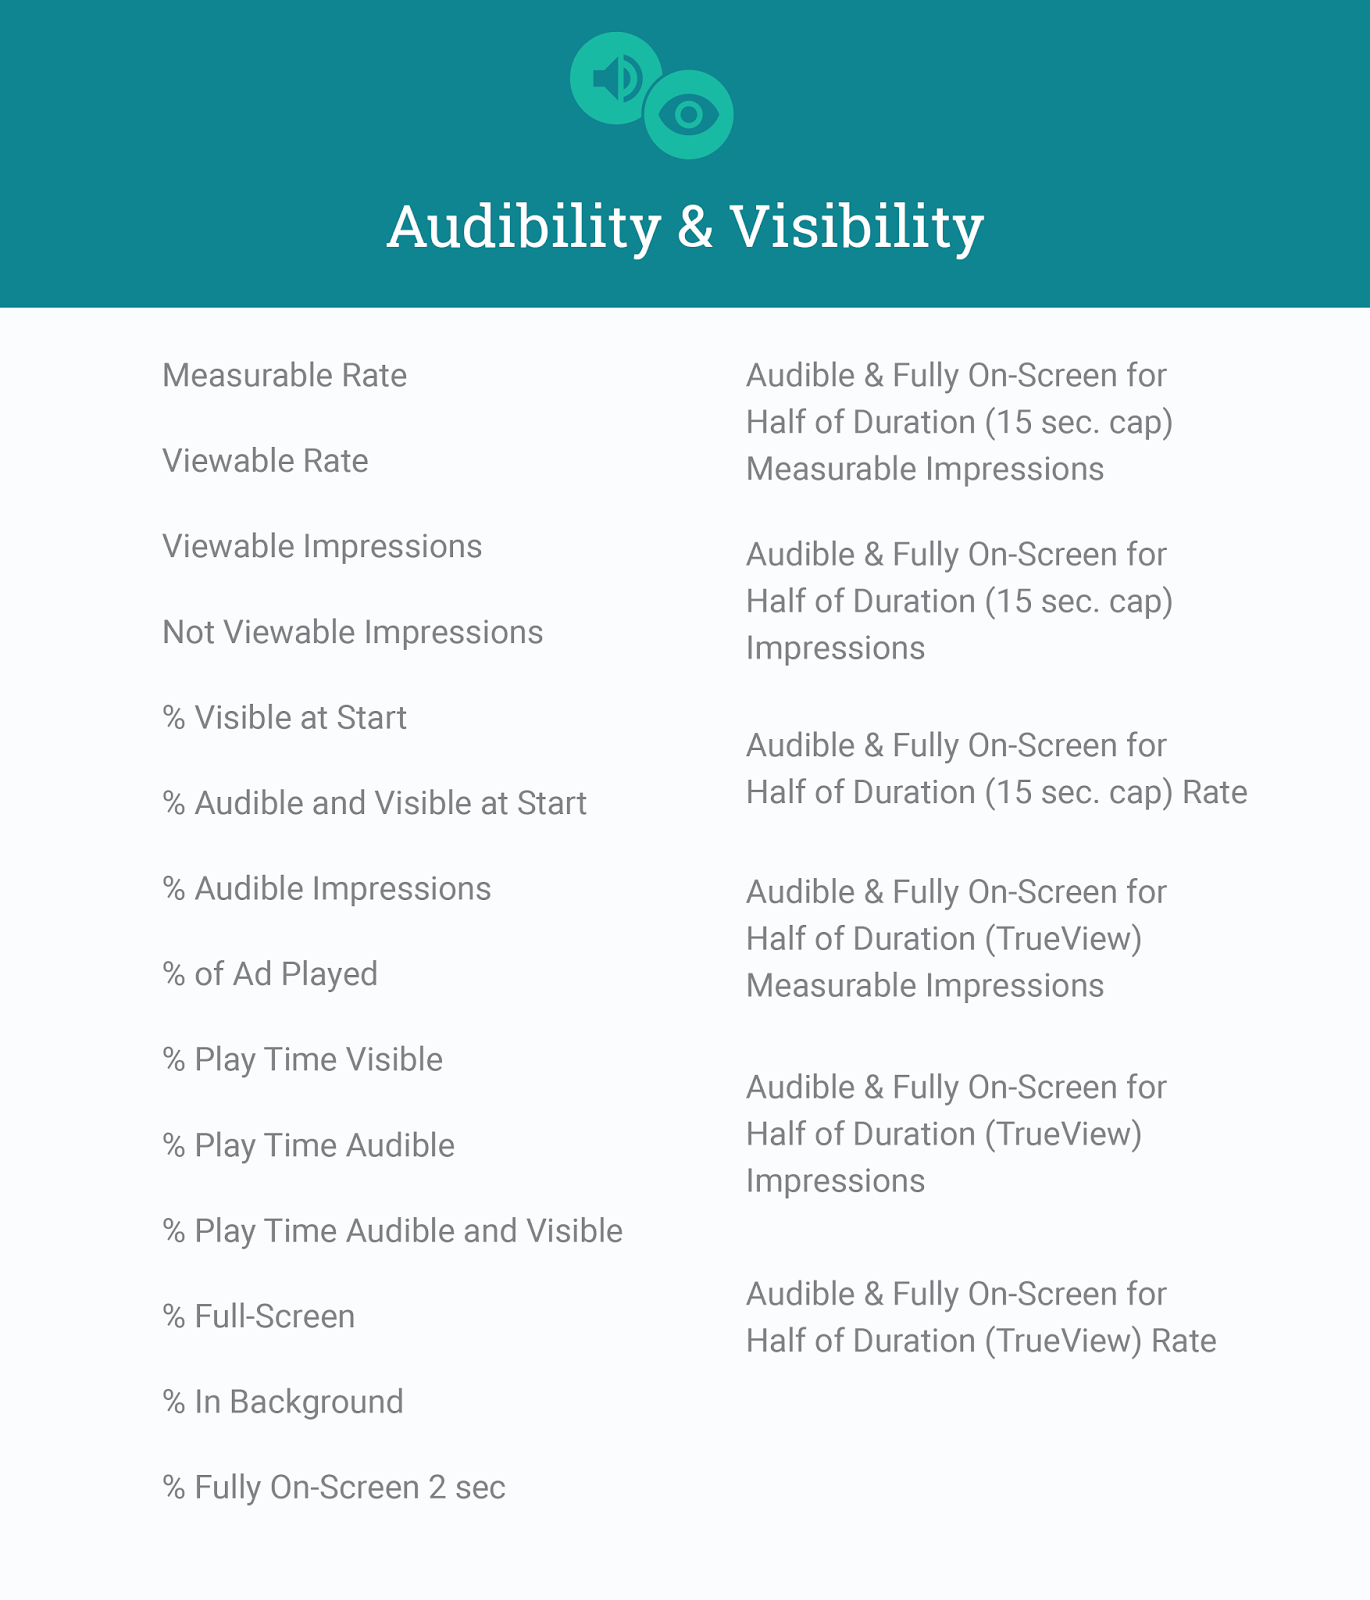 Active View viewability and audibility metrics in DoubleClick